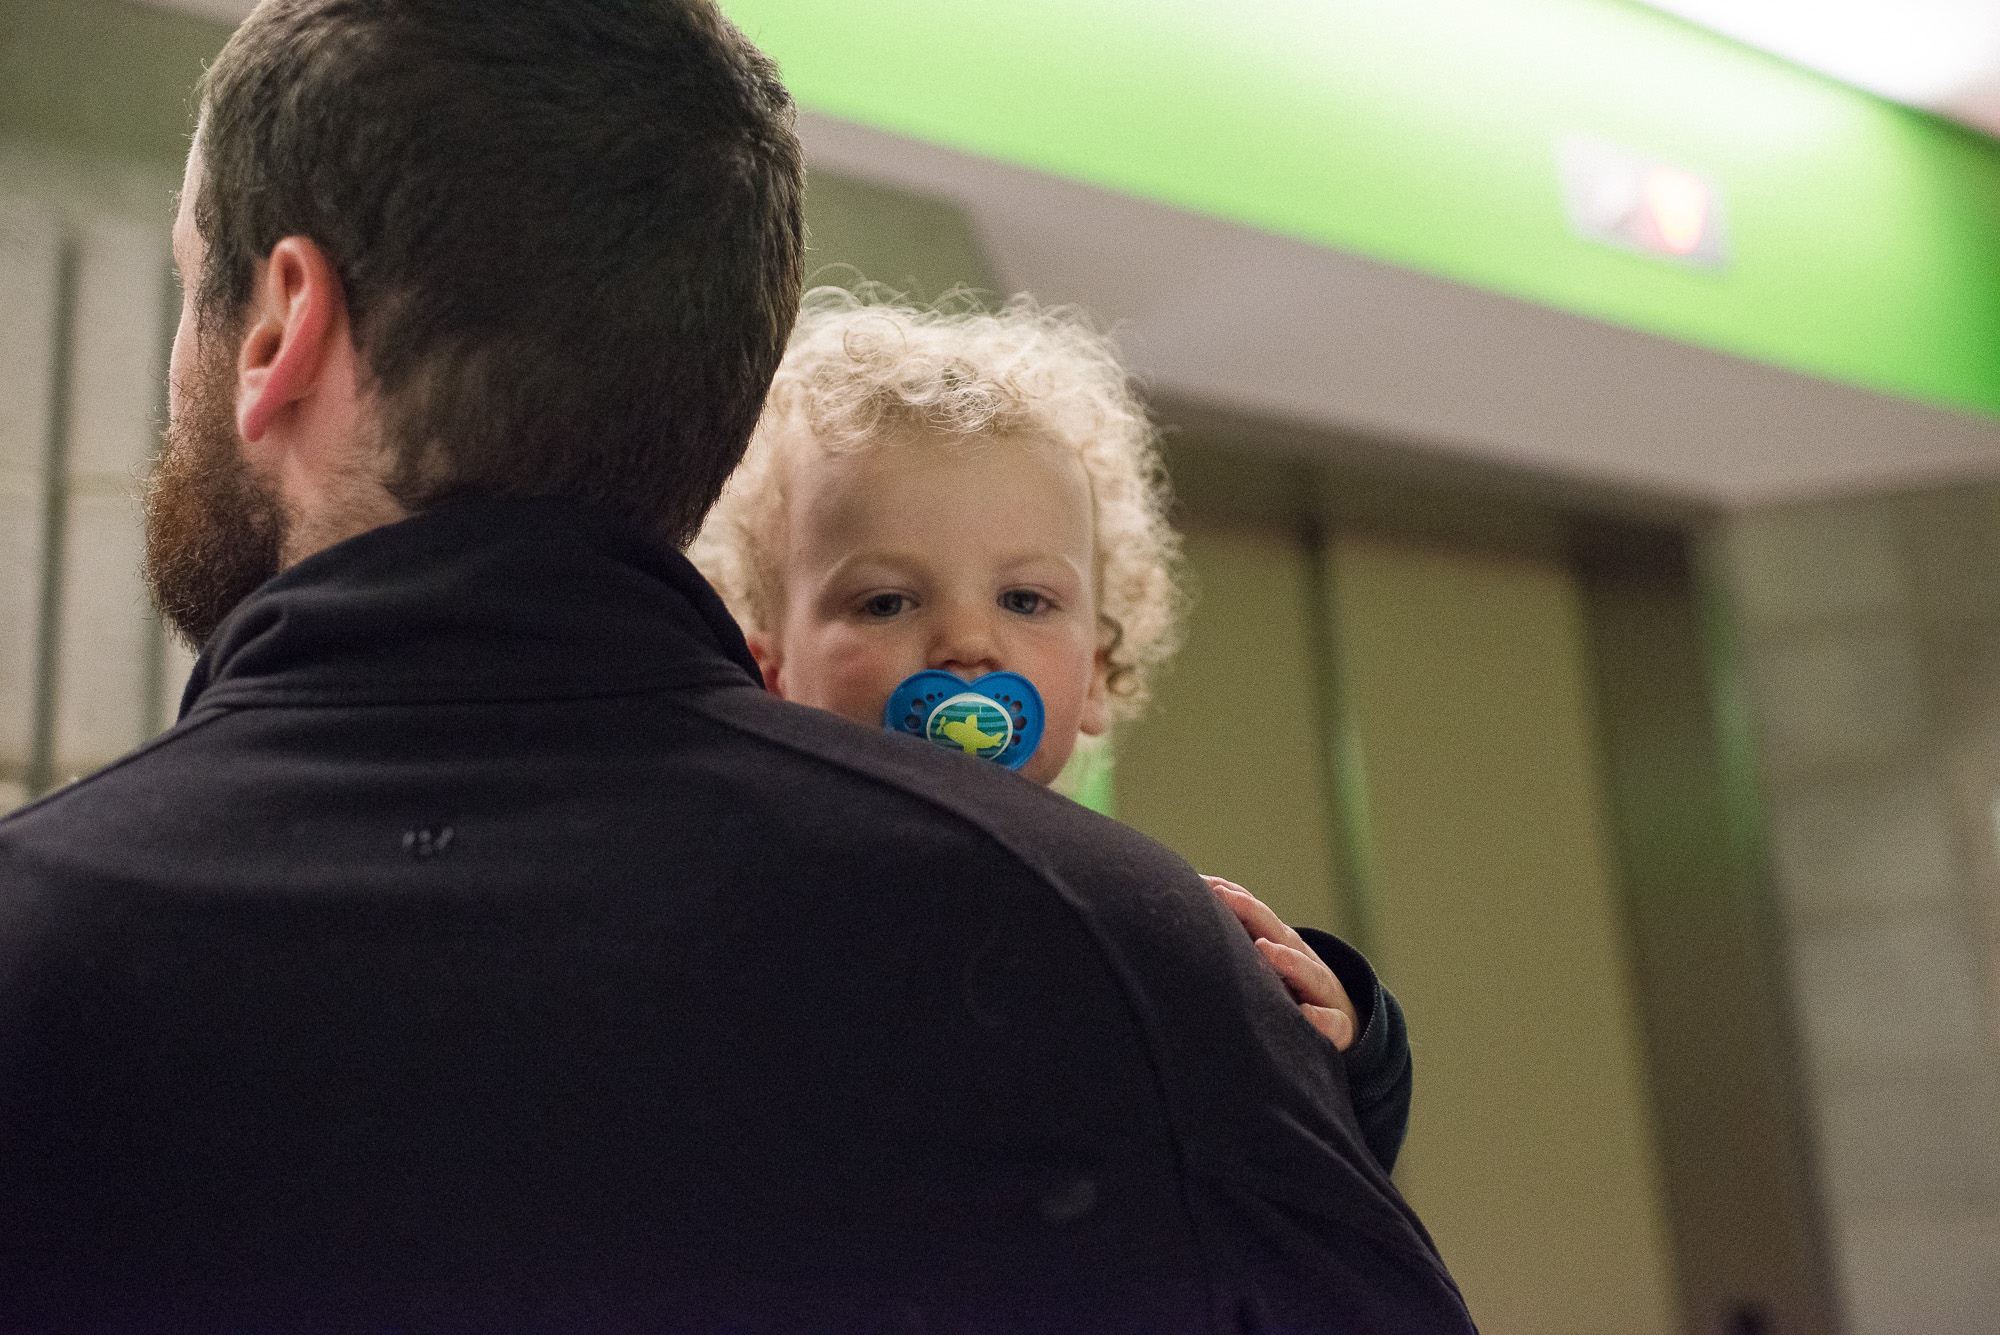 toddler is carried by his father in the elevator lobby